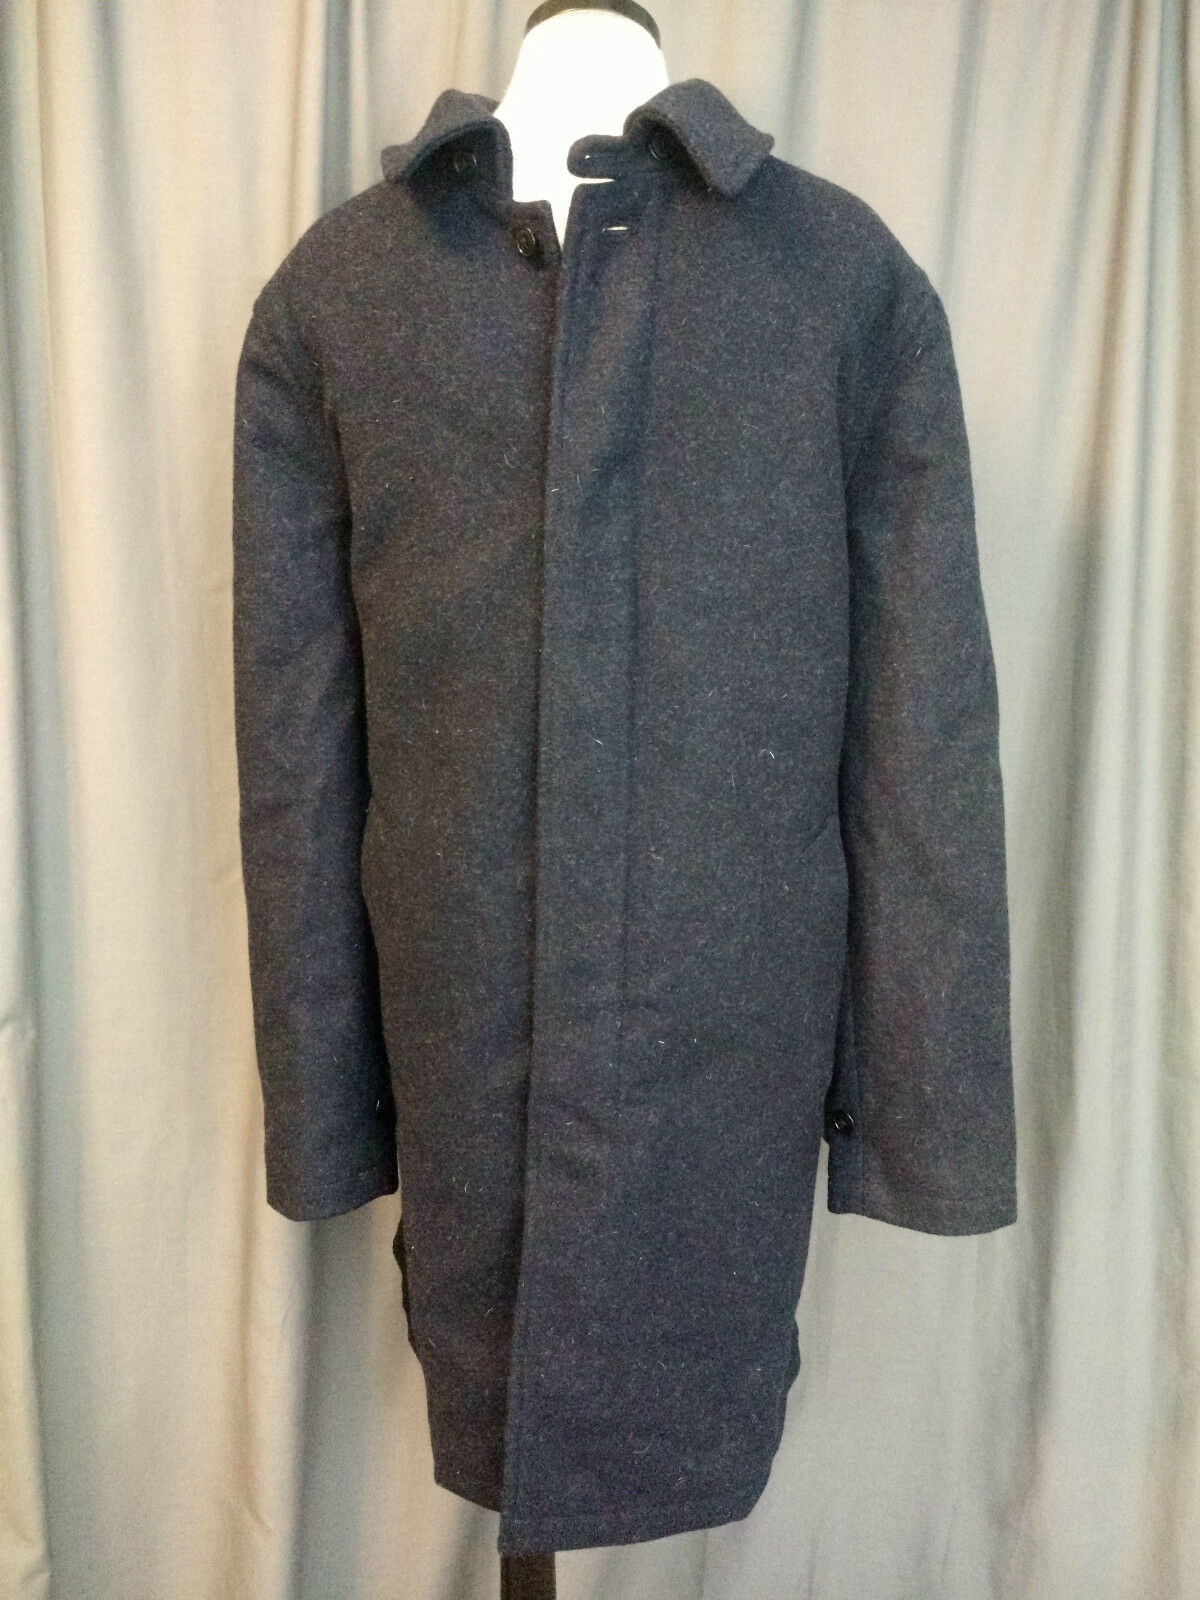 J CREW WOOL CAR COAT HEATHER NAVY SIZE 42 NWT